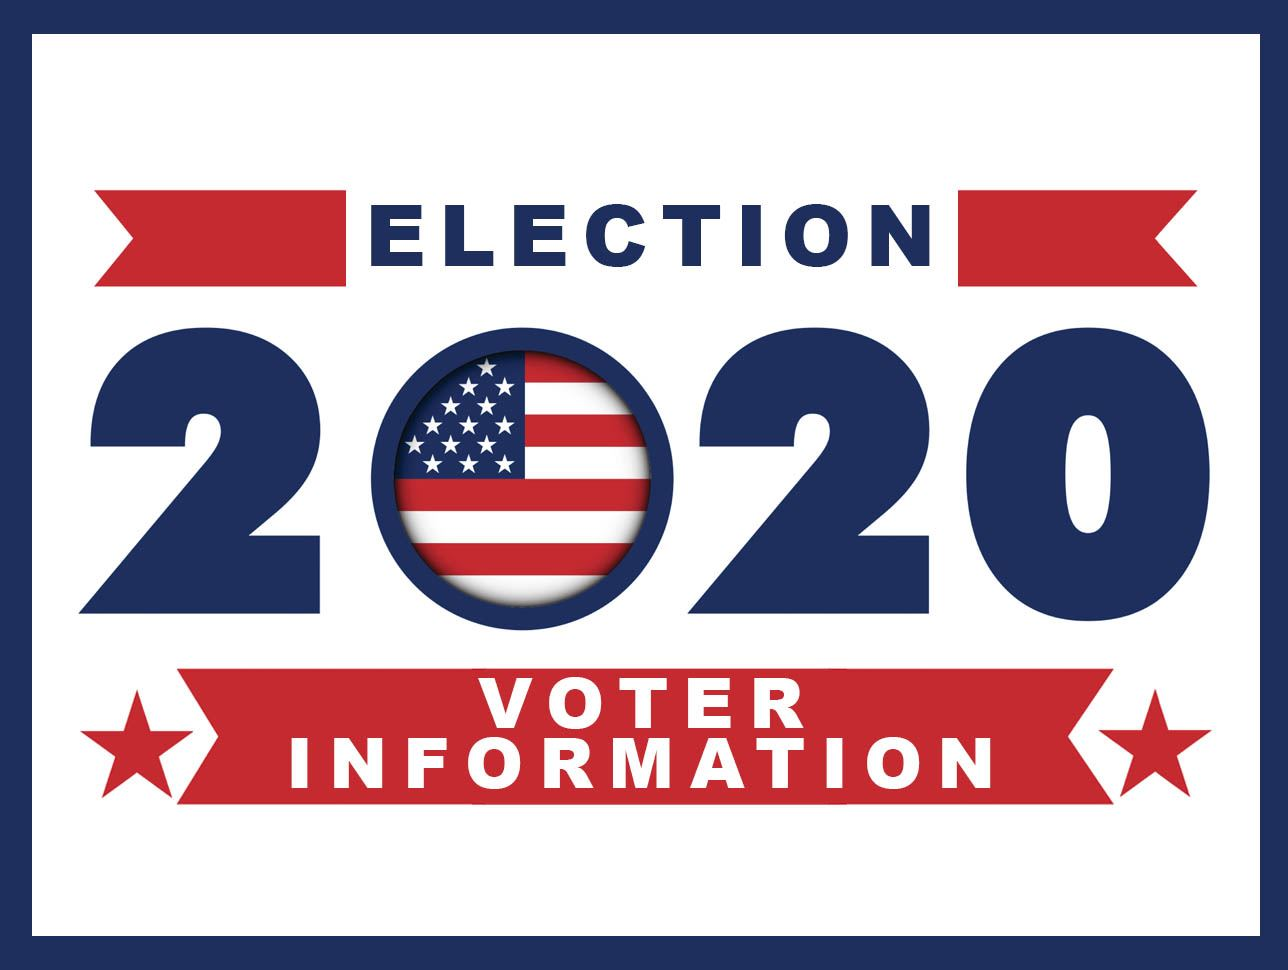 Voter Information Election 2020